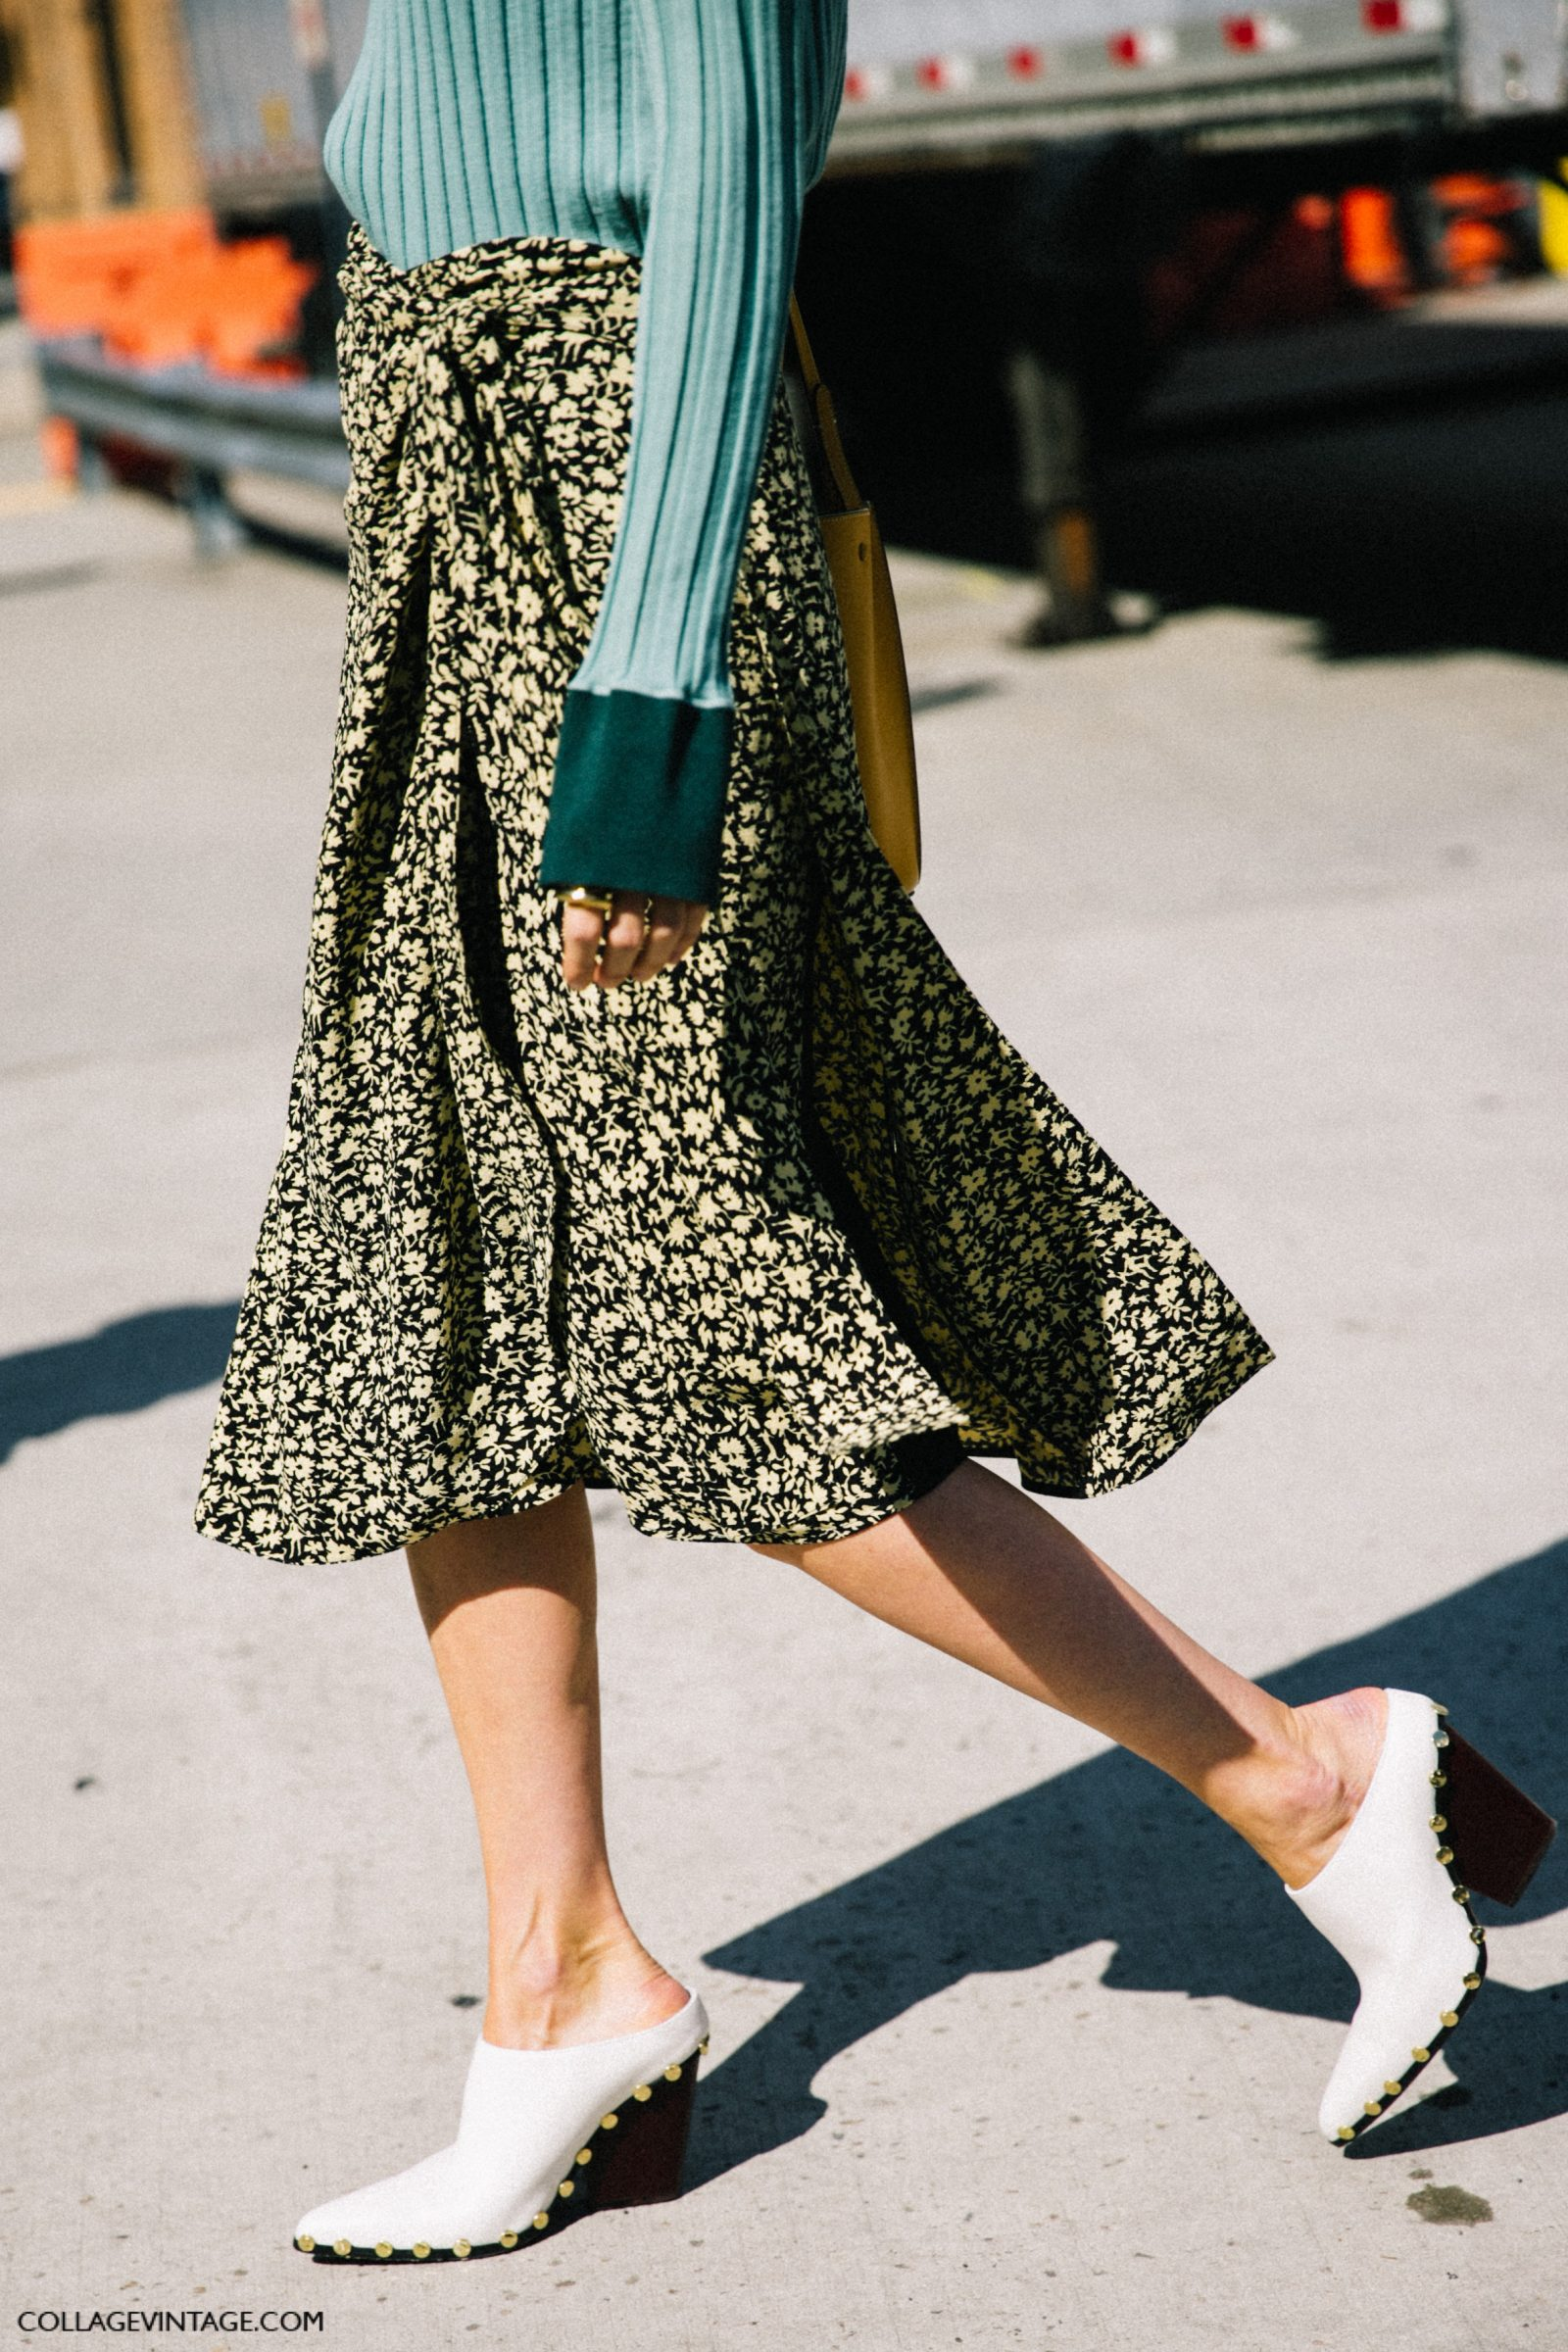 nyfw-new_york_fashion_week_ss17-street_style-outfits-collage_vintage-vintage-phillip_lim-the-row-proenza_schouler-rossie_aussolin-302